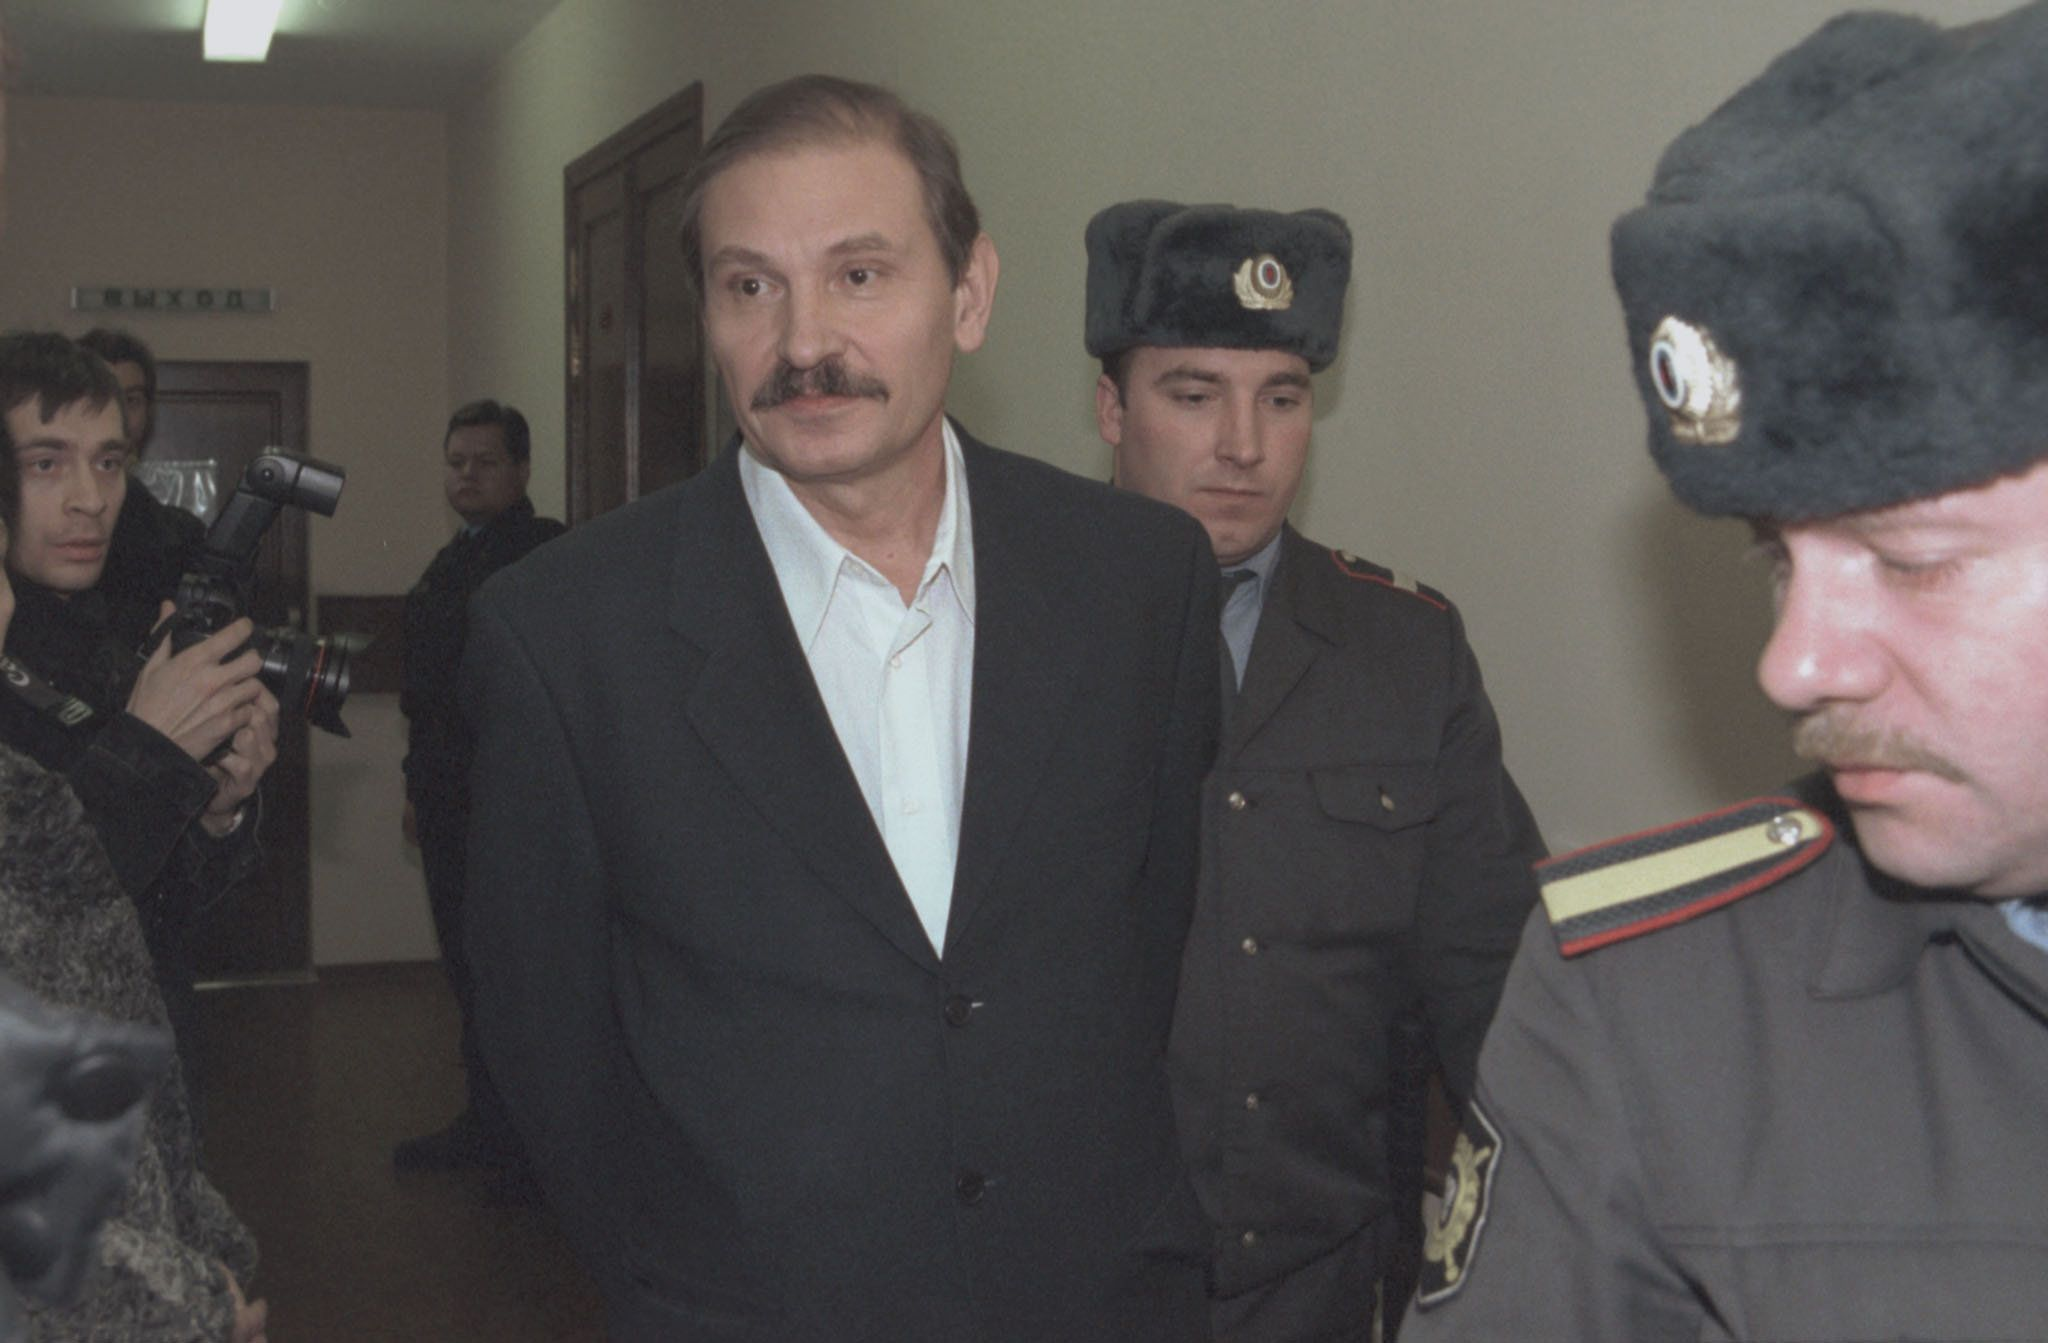 Nikolai Glushkov was found dead in his London apartment on Monday evening.